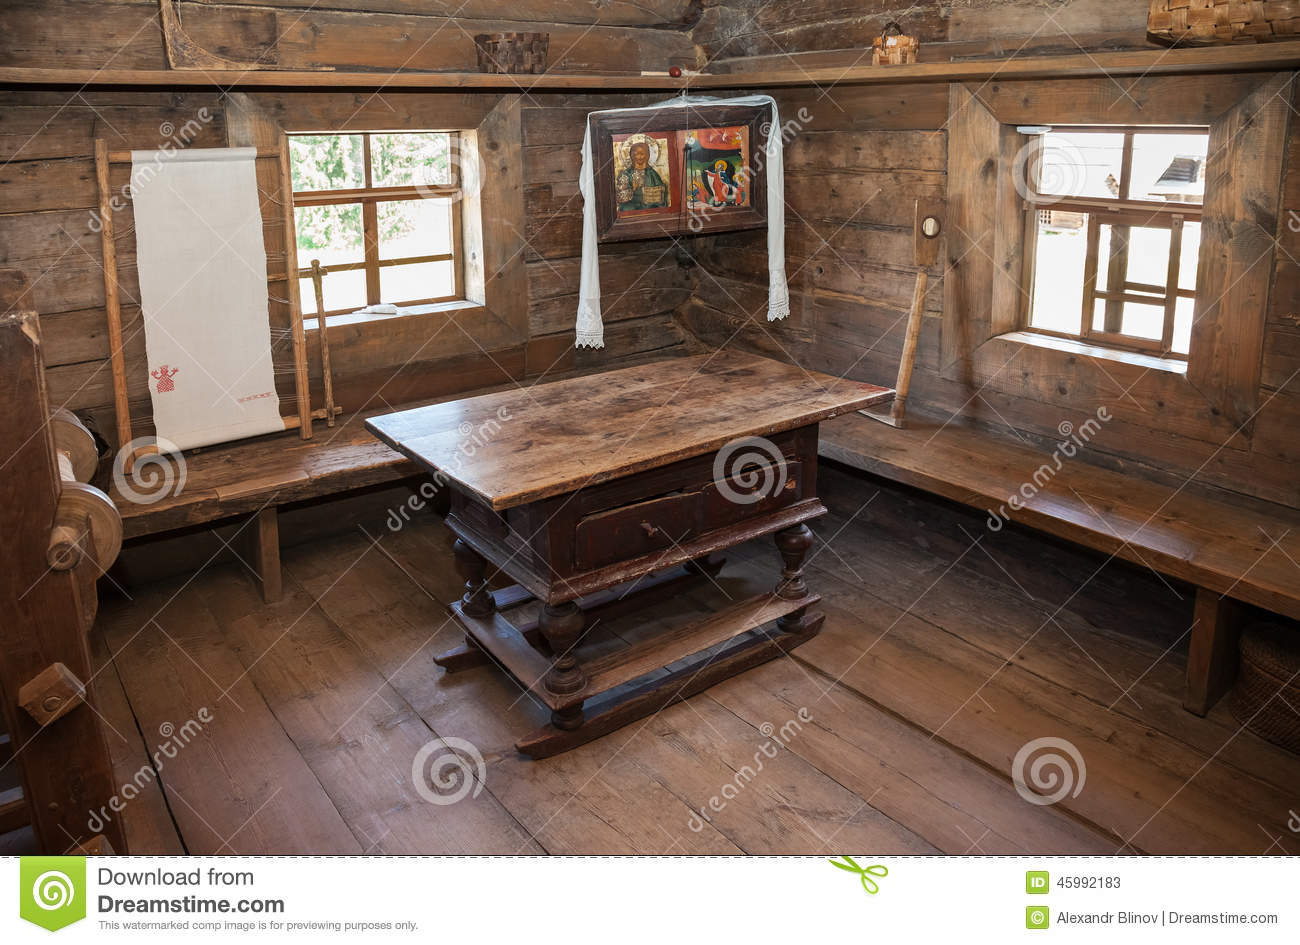 Int rieur de vieille maison en bois rurale photo stock - Maison en bois interieur ...